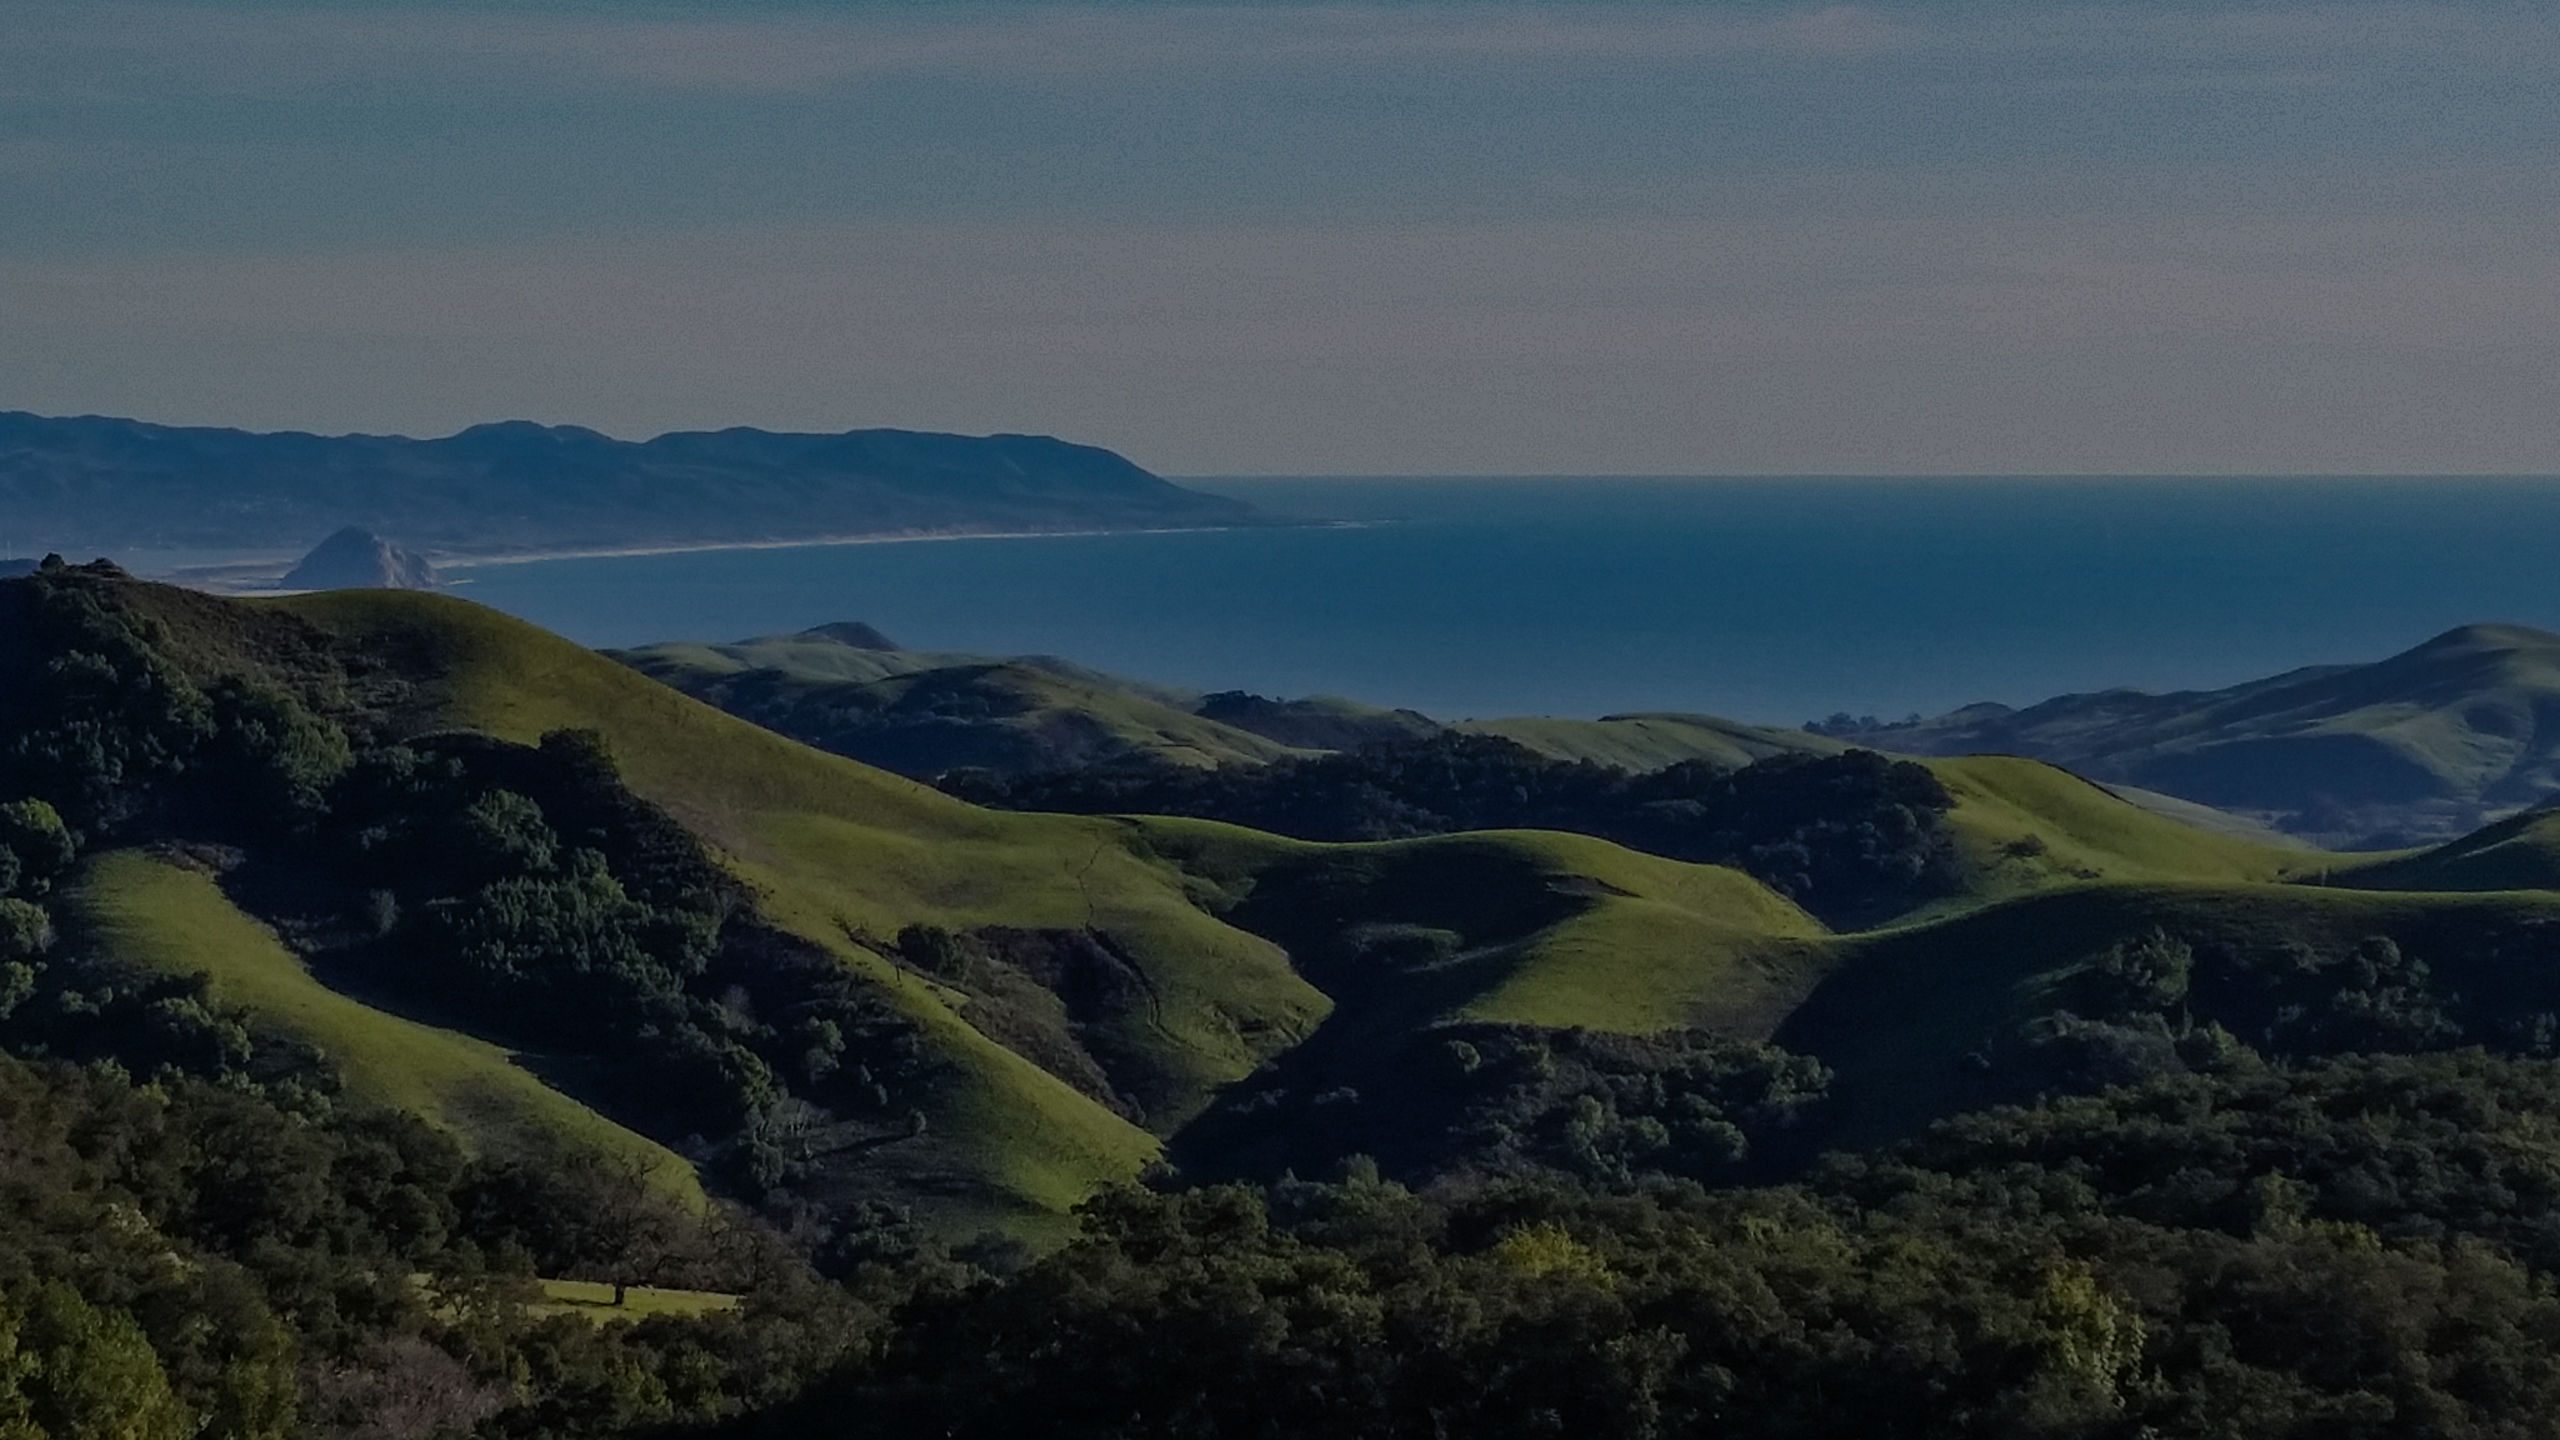 The Central Coast from Hwy 46